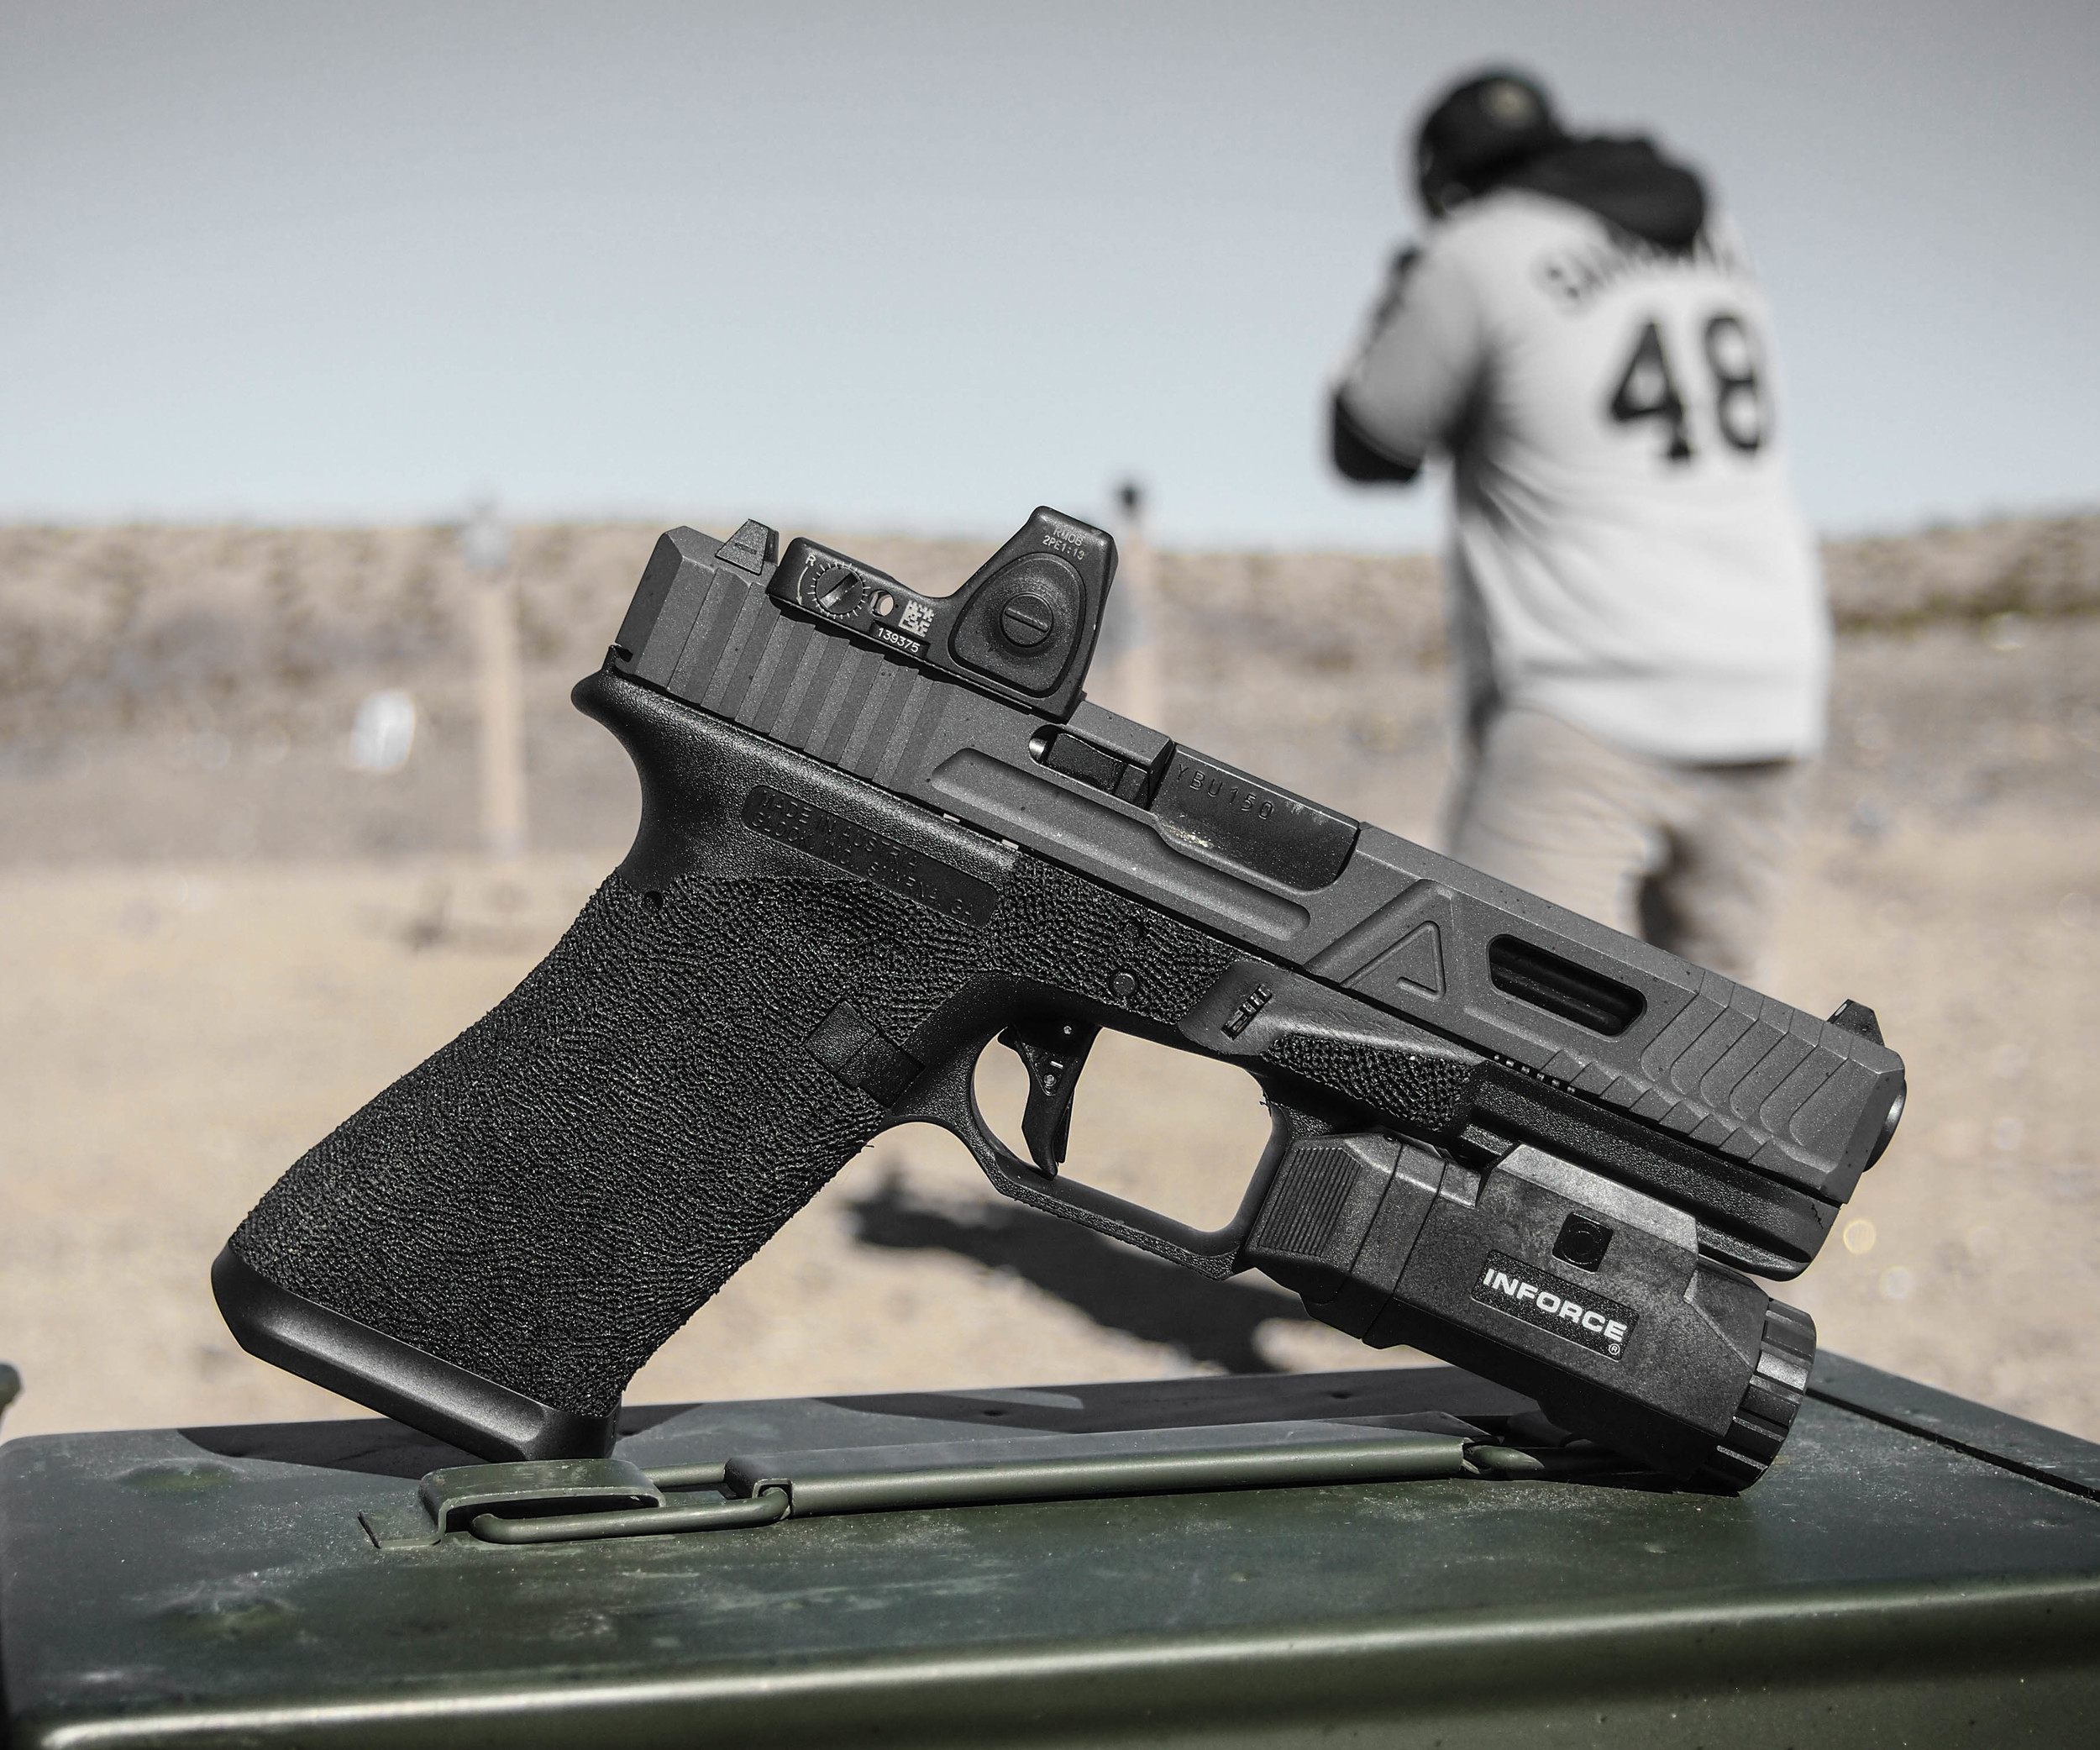 Unless you've been living under a rock for the last year you've most likely heard of Agency Arms. They customize the hell of out Glocks.Most people cringe when they find out you're rocking a $3,000 Glock 17. Especially since a stock one is a little over $500 brand new, out the door. We've been shooting it for almost a year and its proven to be worth every penny. I'm not going to sit here and explain all of the badassery that goes into one,you can find that on their website, however, I will say if you find some extra cash in between your couch cushions, let Agency fancy up a Glock for you. You won't be disappointed.